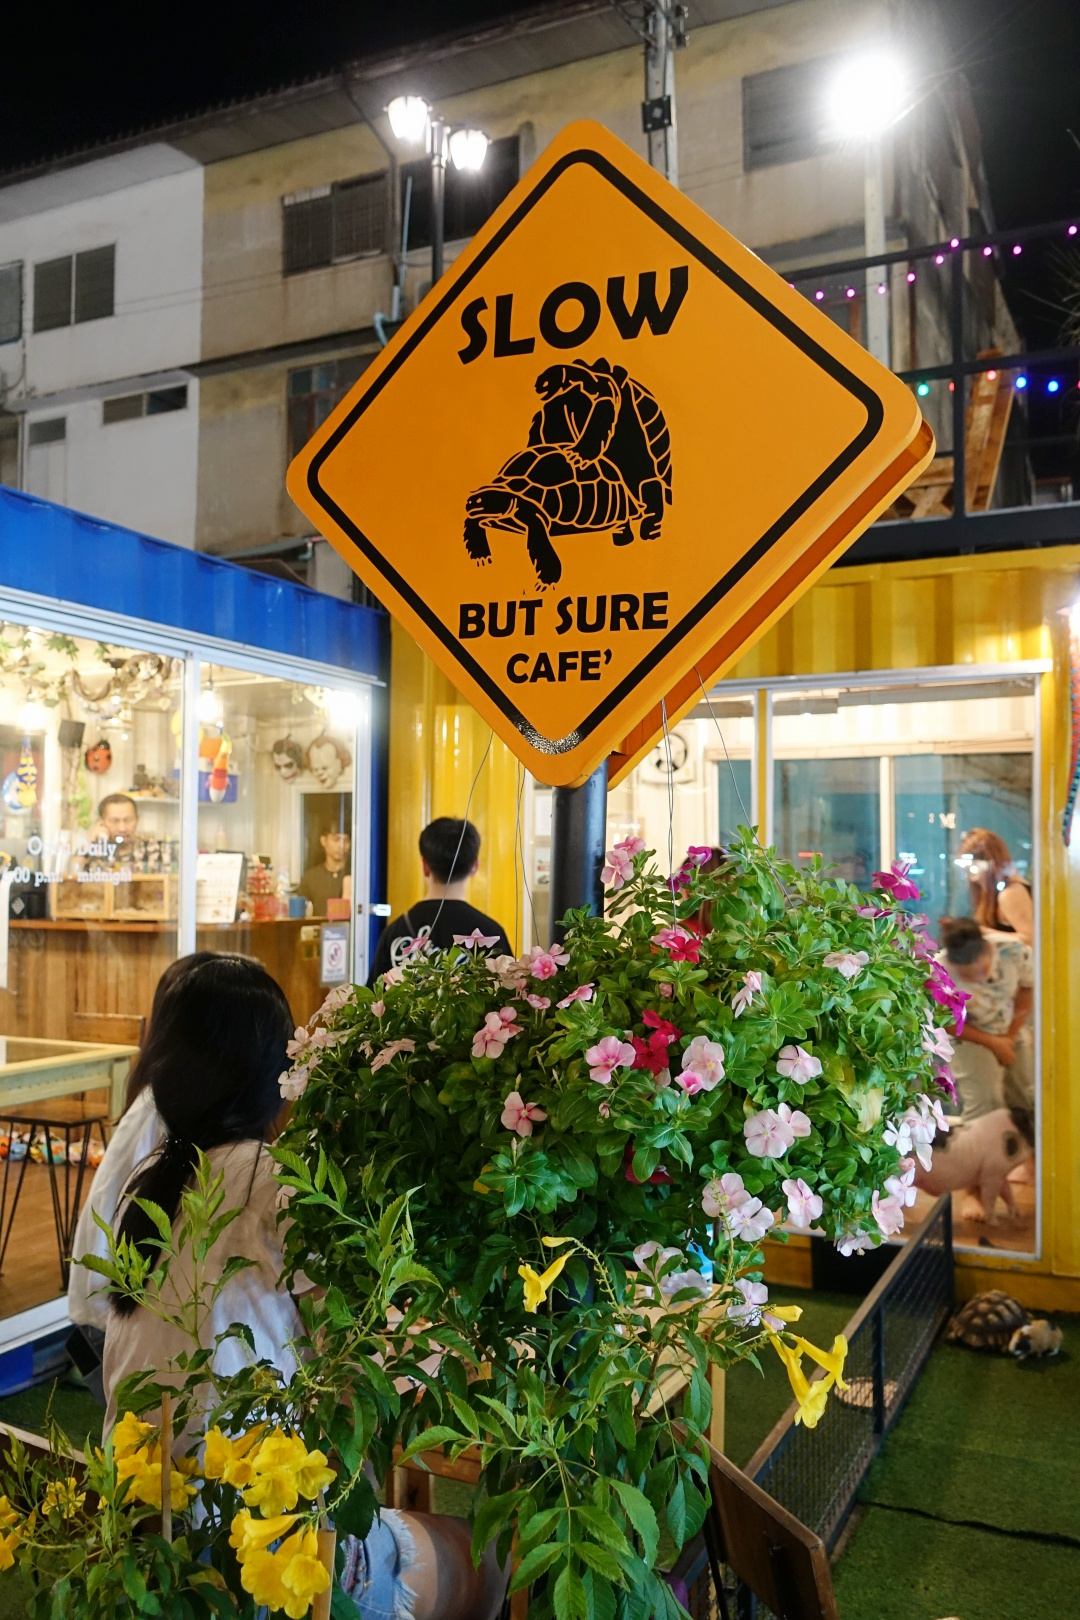 2018 Bangkok Talad NEON Night Bazaar - Slow But Sure Cafe | joanne-khoo.com